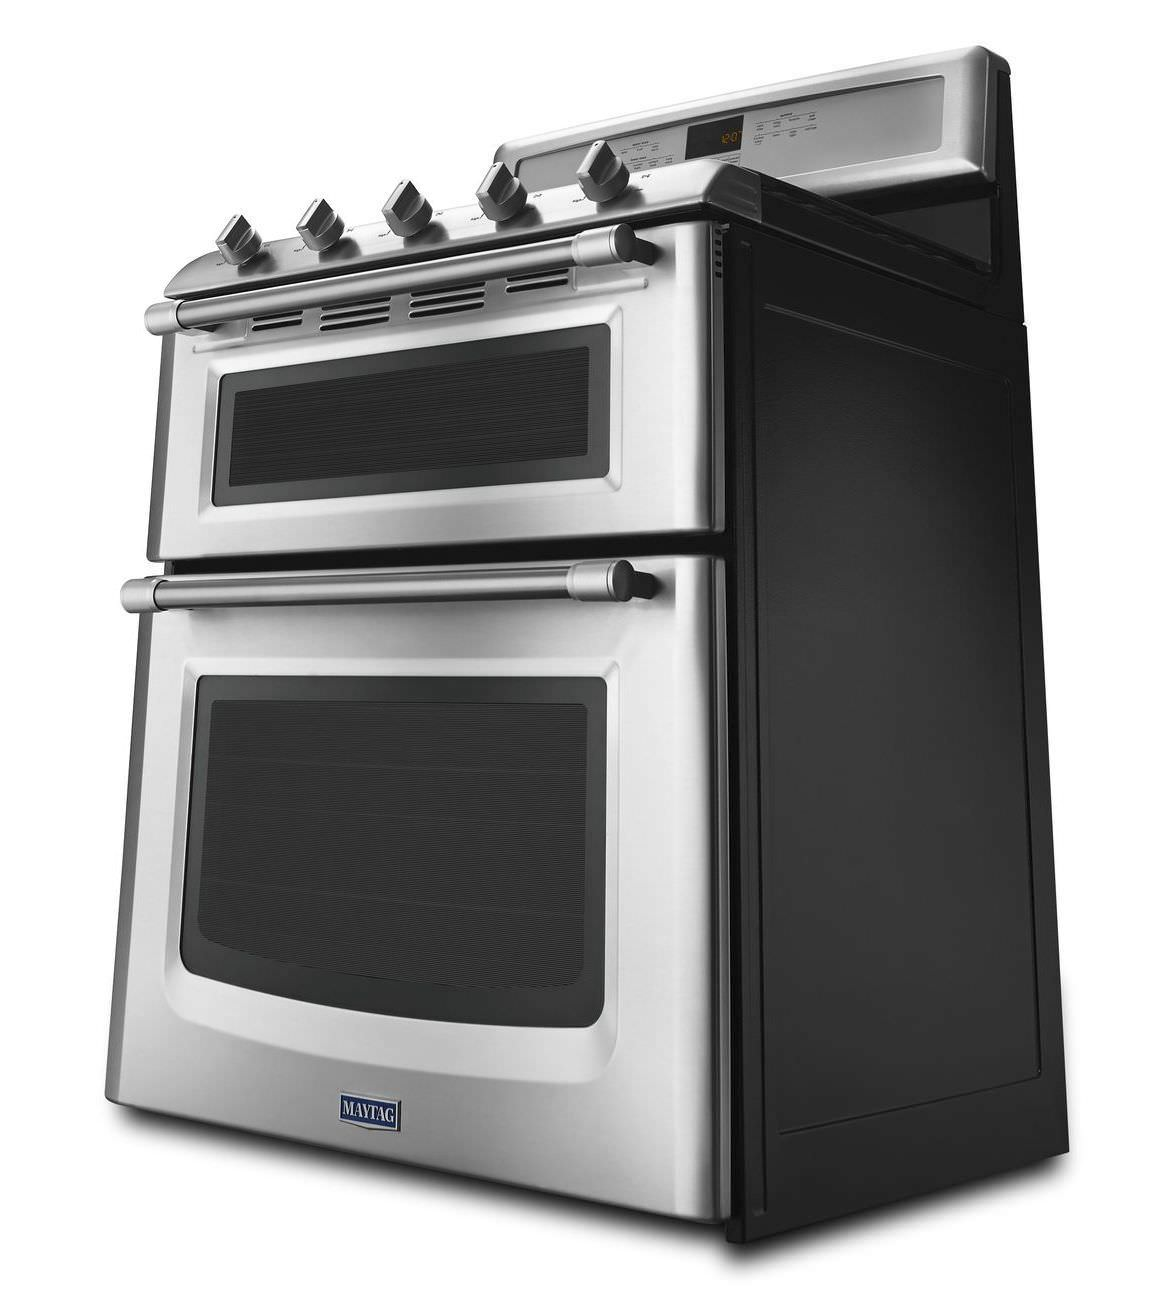 gas range cooker - mgt8820ds - maytag